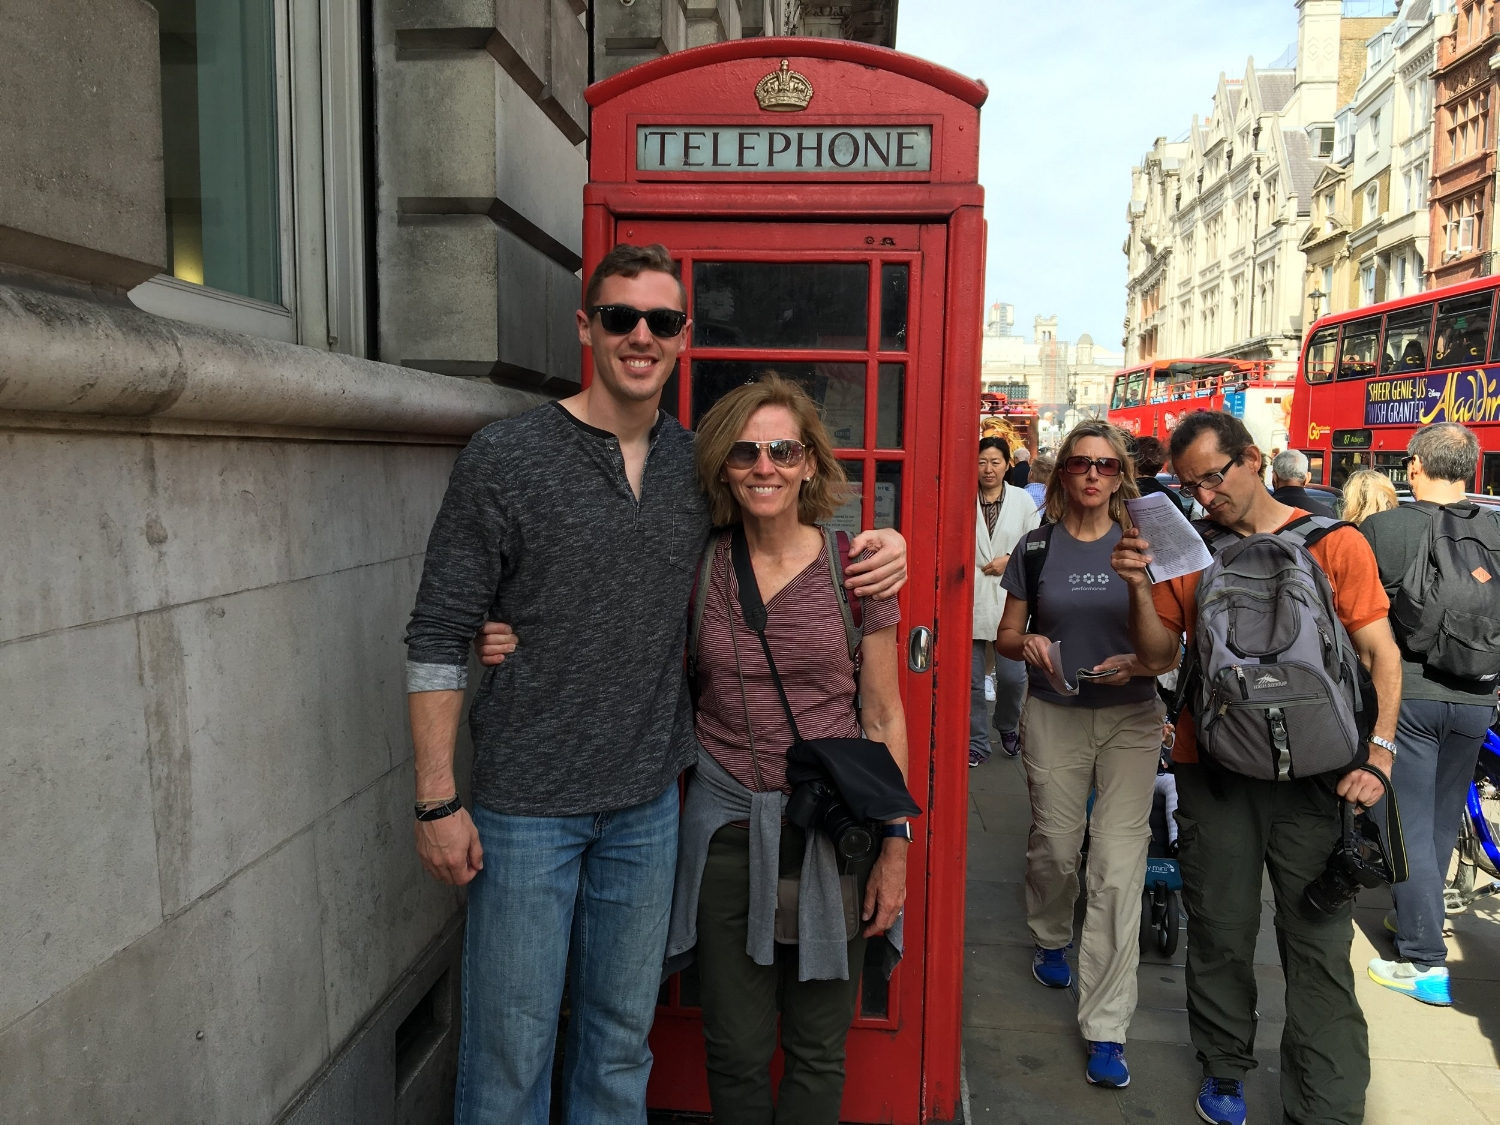 TAKE YOUR MOM TO LONDON FOR THE WEEKEND, TRUST ME IT'S WORTH IT.